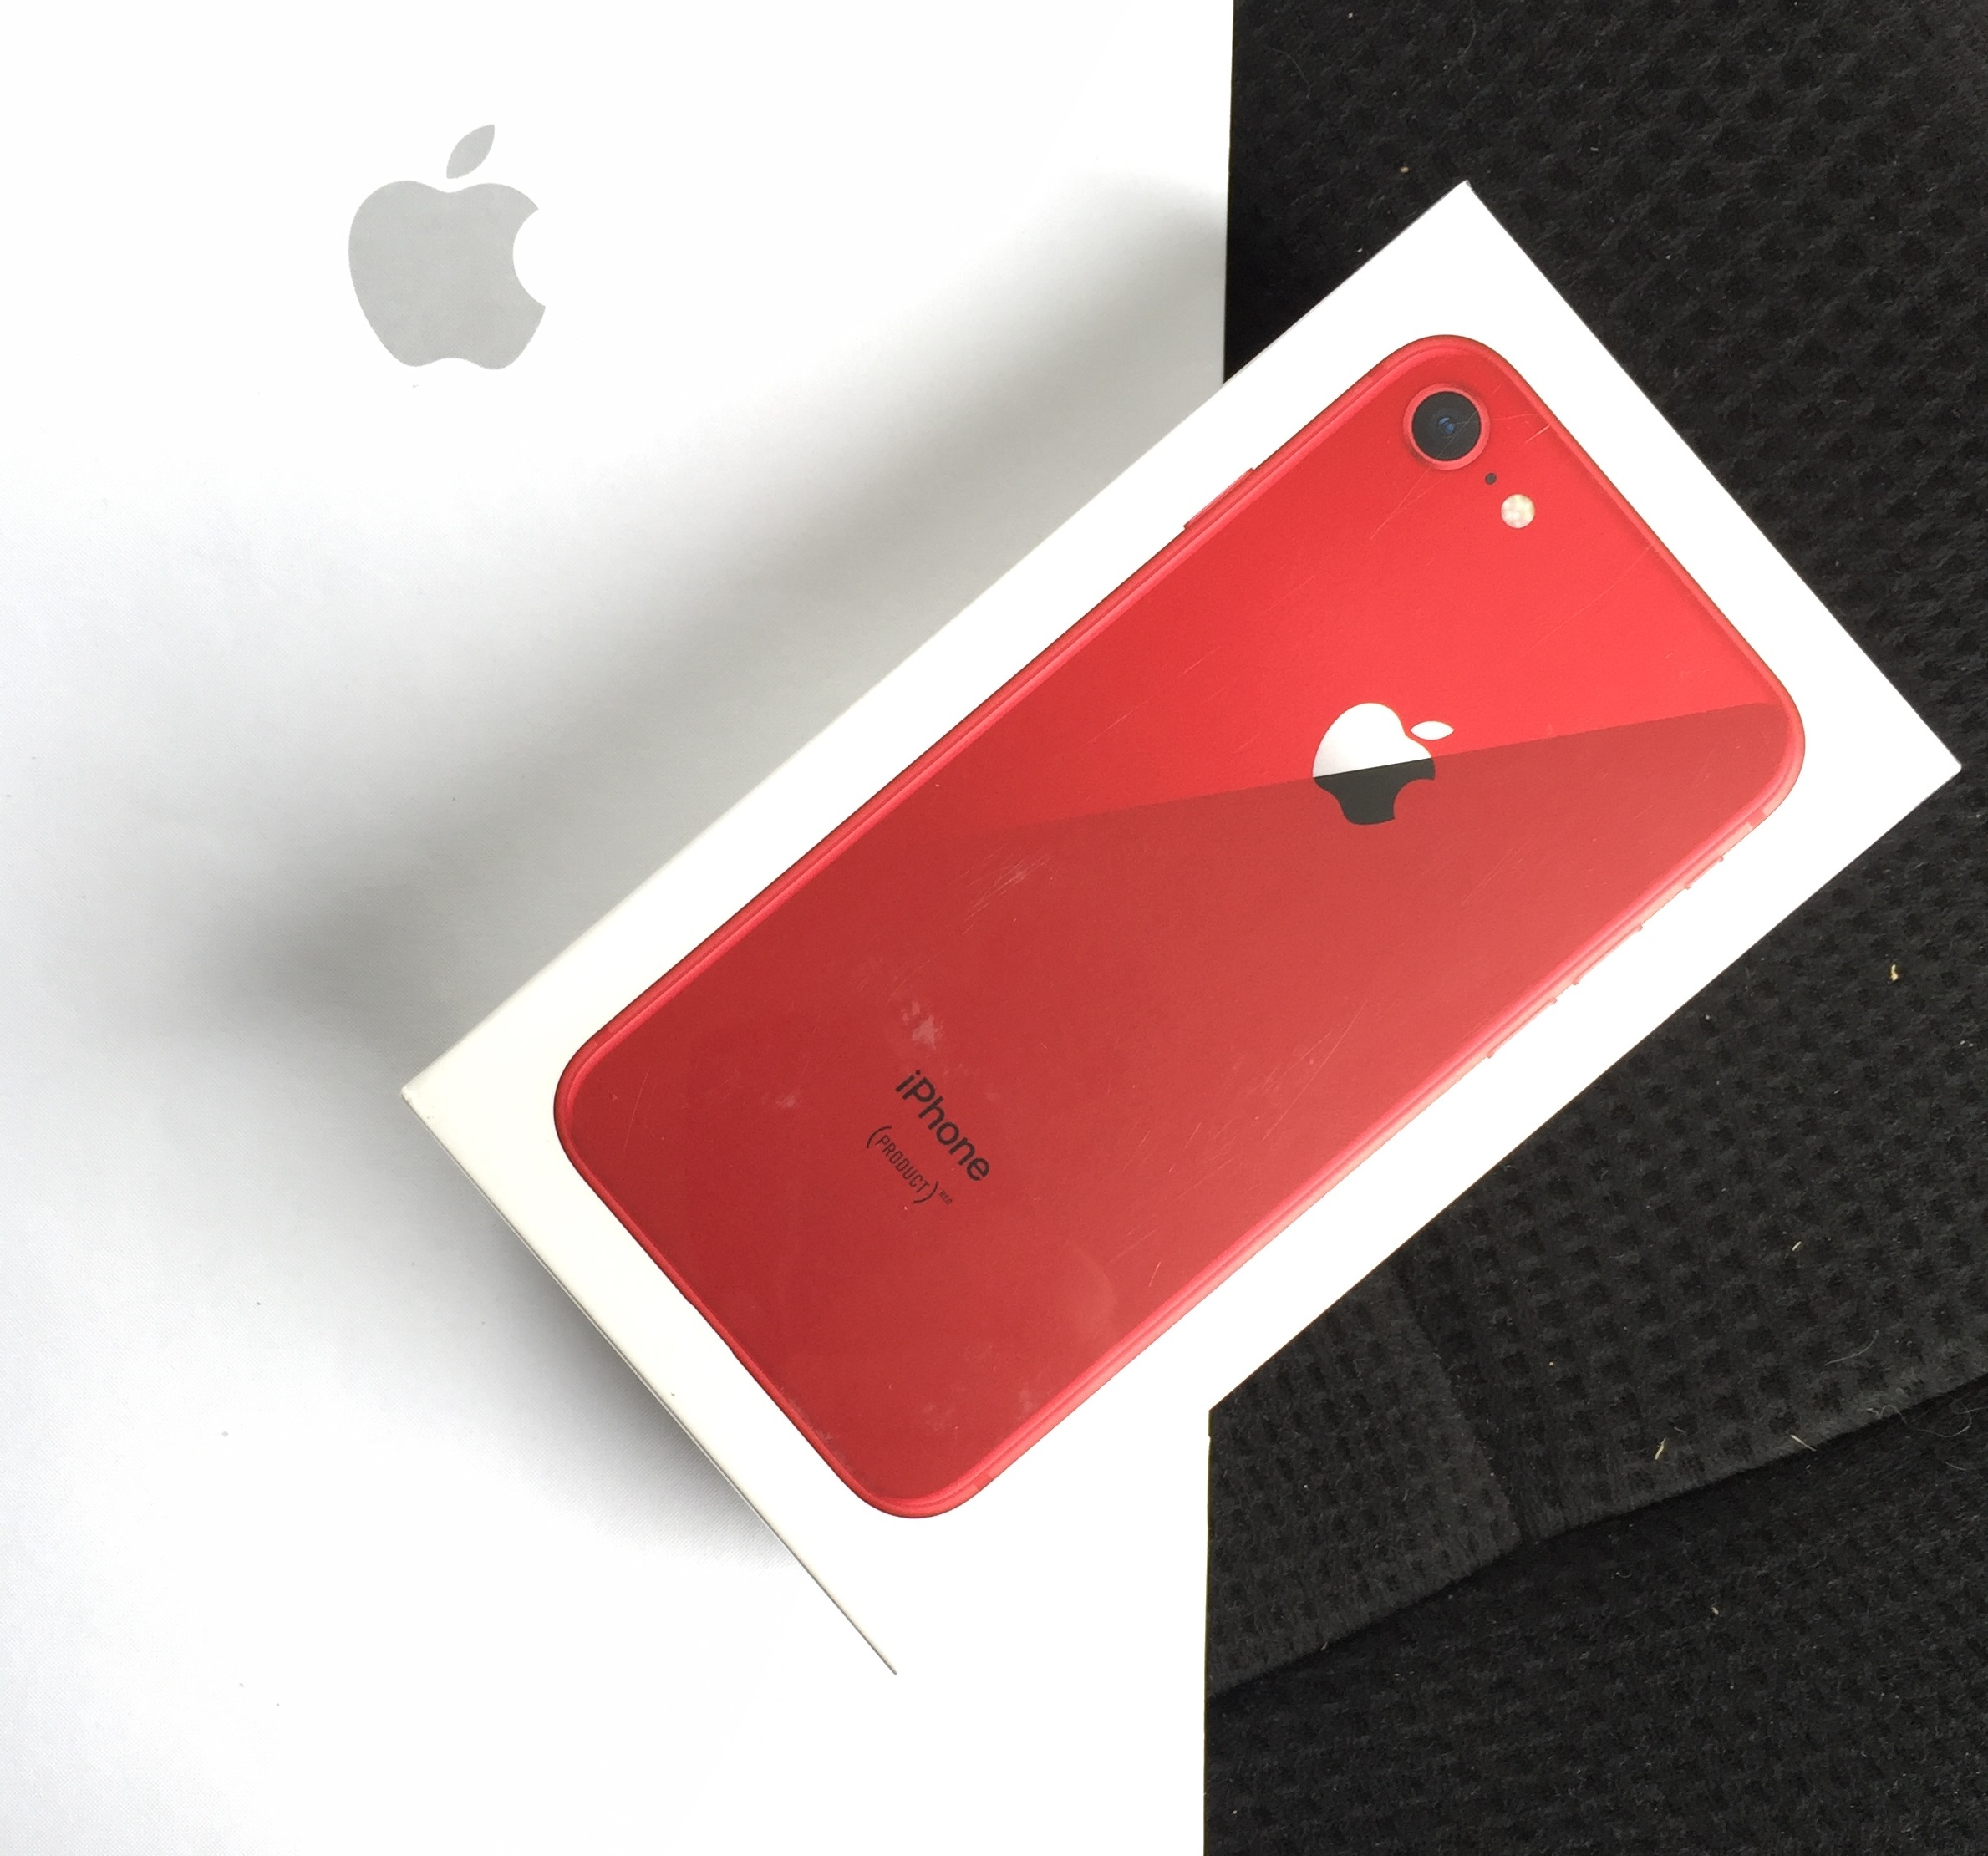 Buy iPhone 8 (PRODUCT)RED™ from U.S. Apple Store